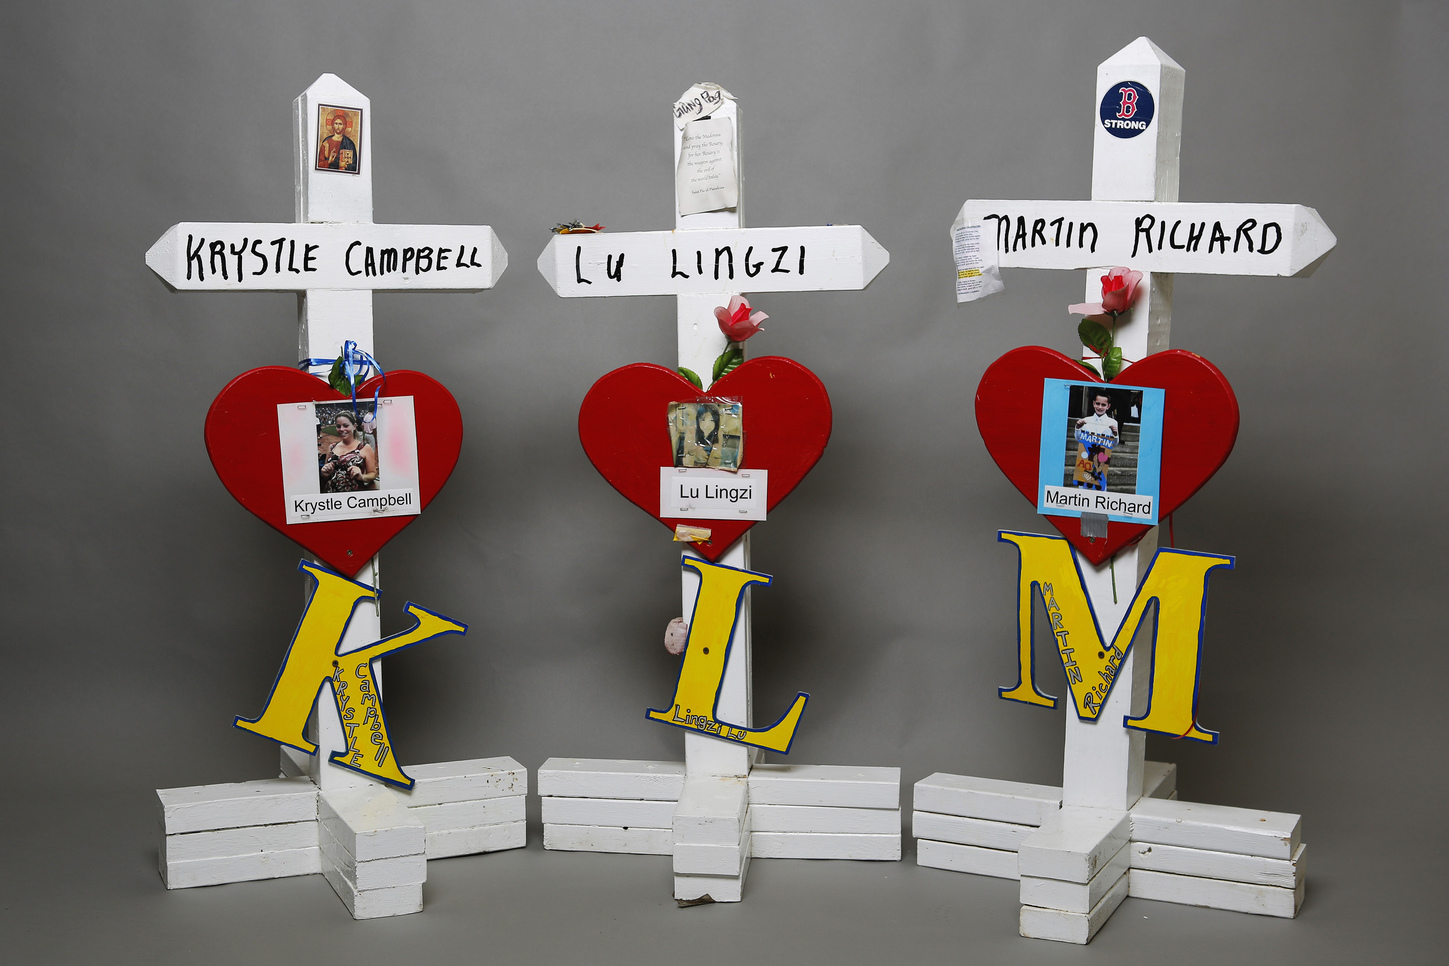 Crosses for Boston Marathon bombing victims Krystle Campbell, Lu Lingzi and Martin Richard, artifacts saved from the makeshift Boston Marathon bombing memorial.  REUTERS/Brian Snyder